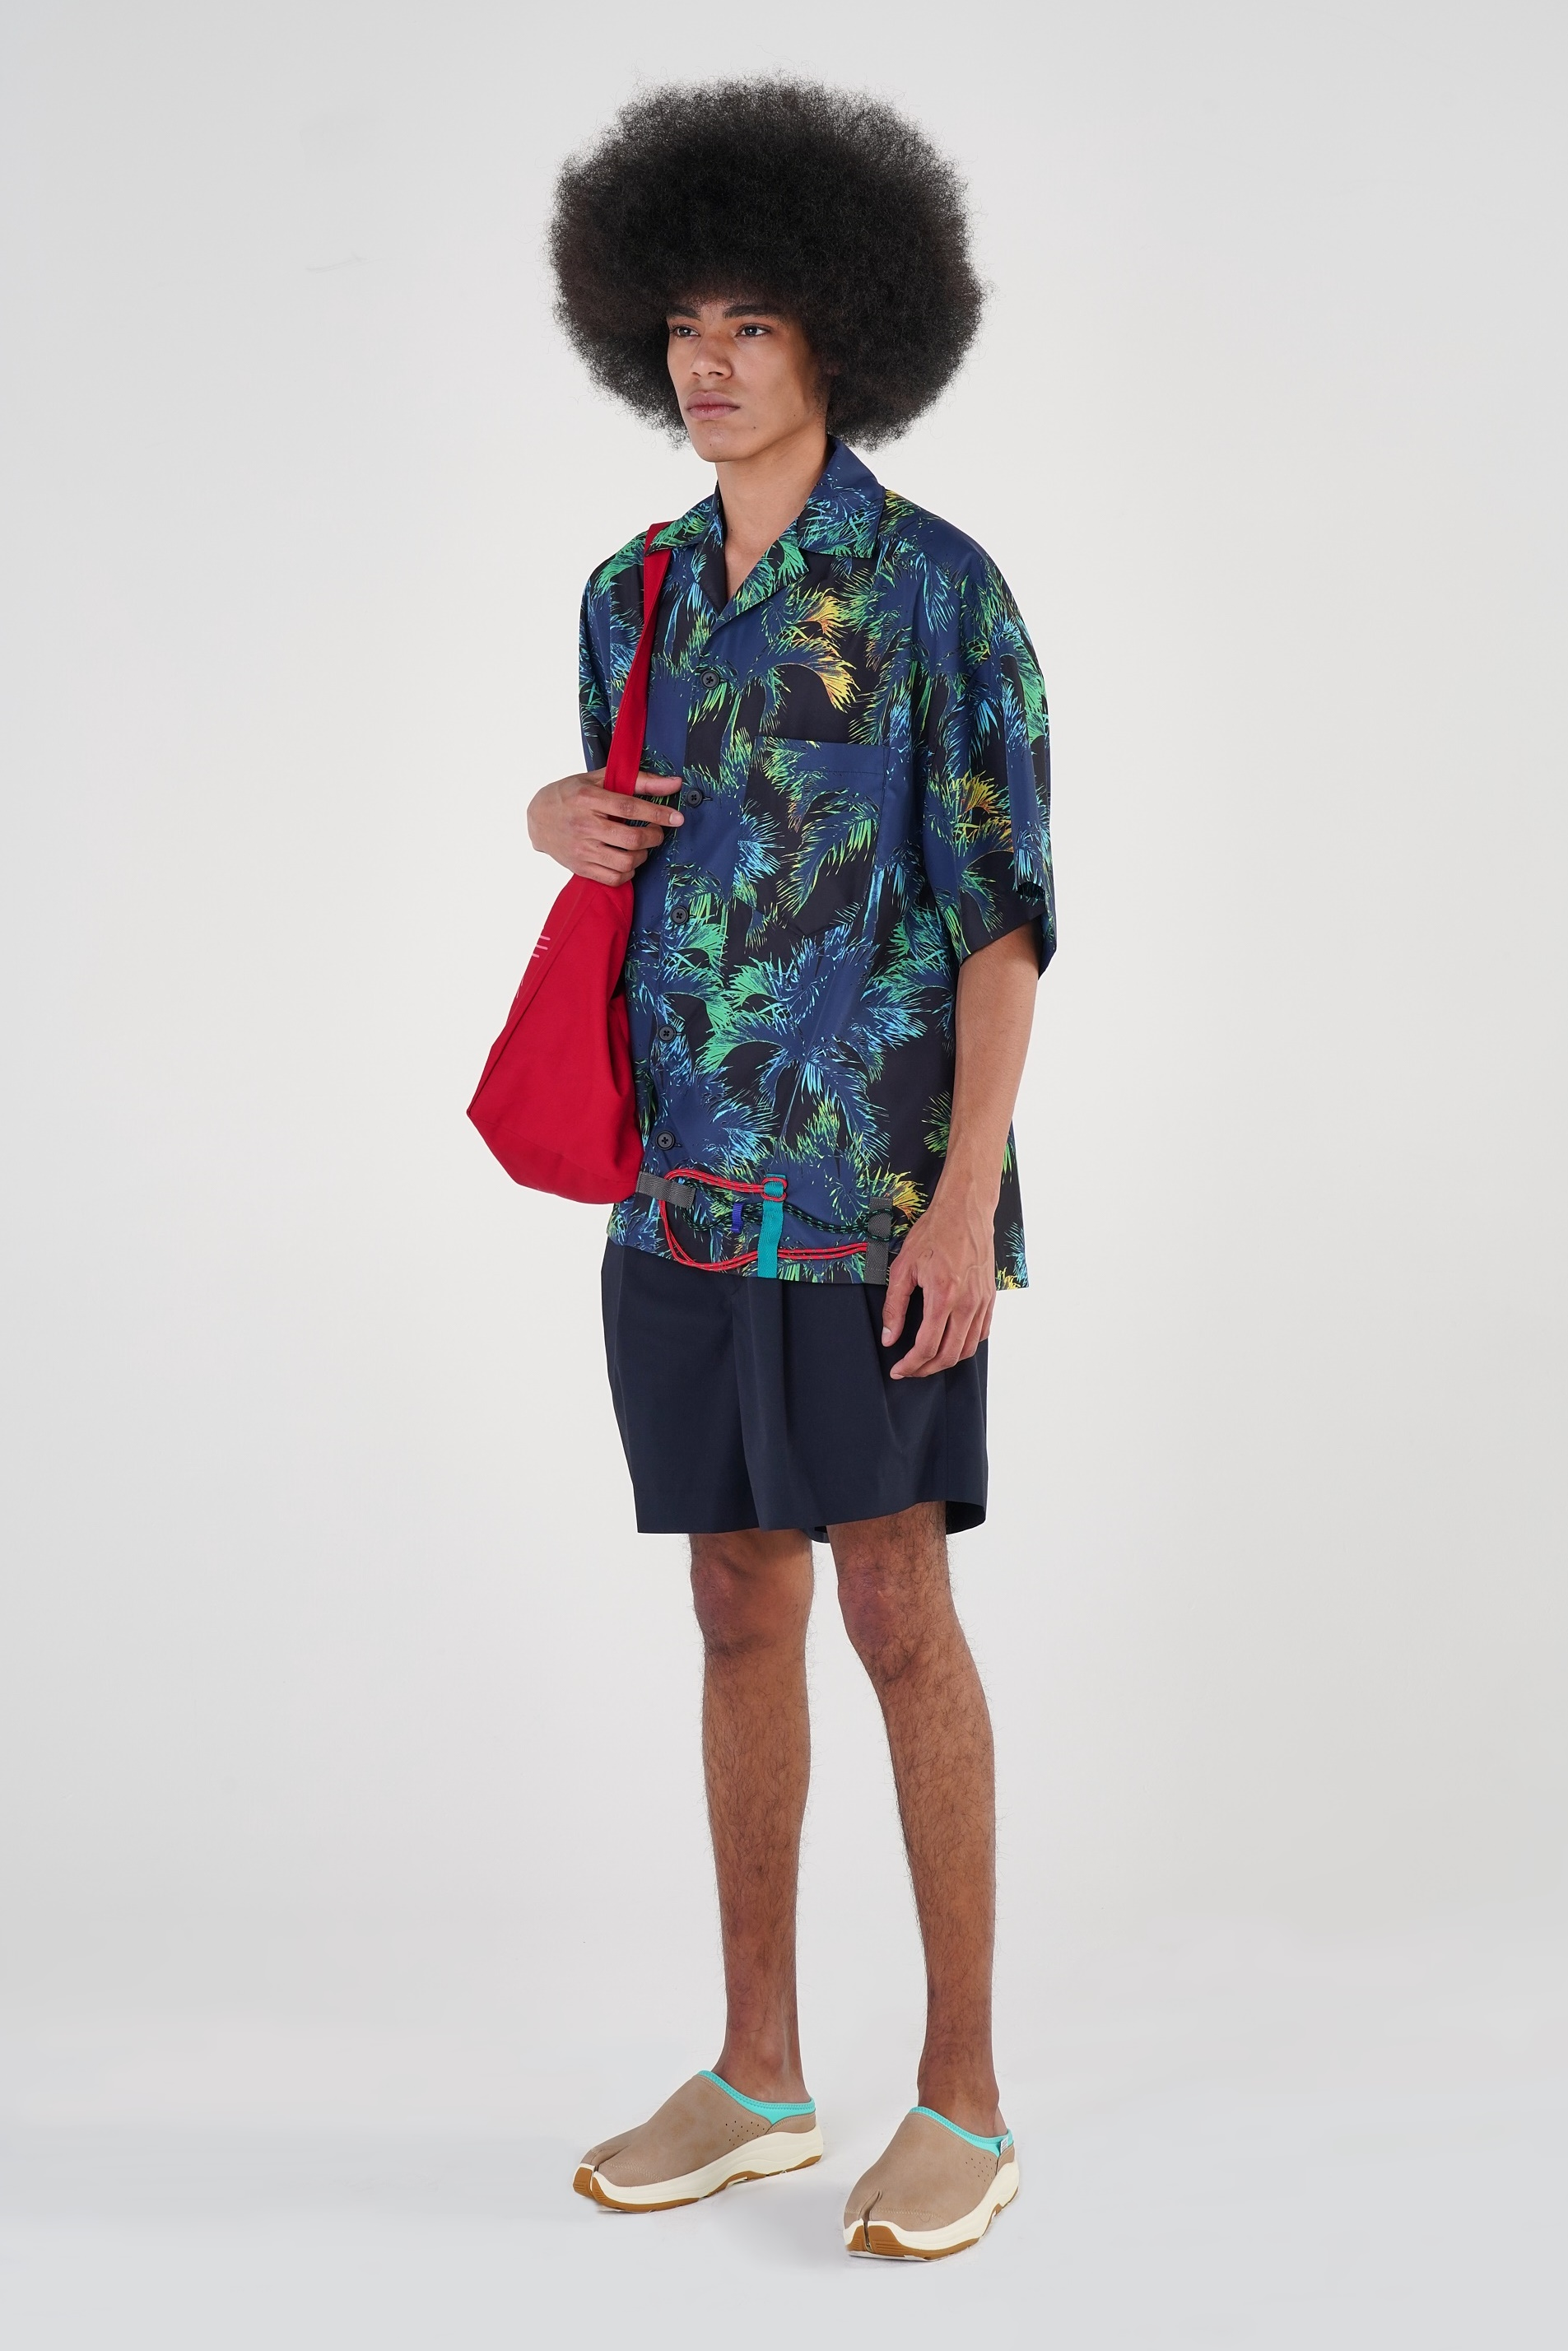 ELIDENMEN 20 S/S LOOKBOOK 2